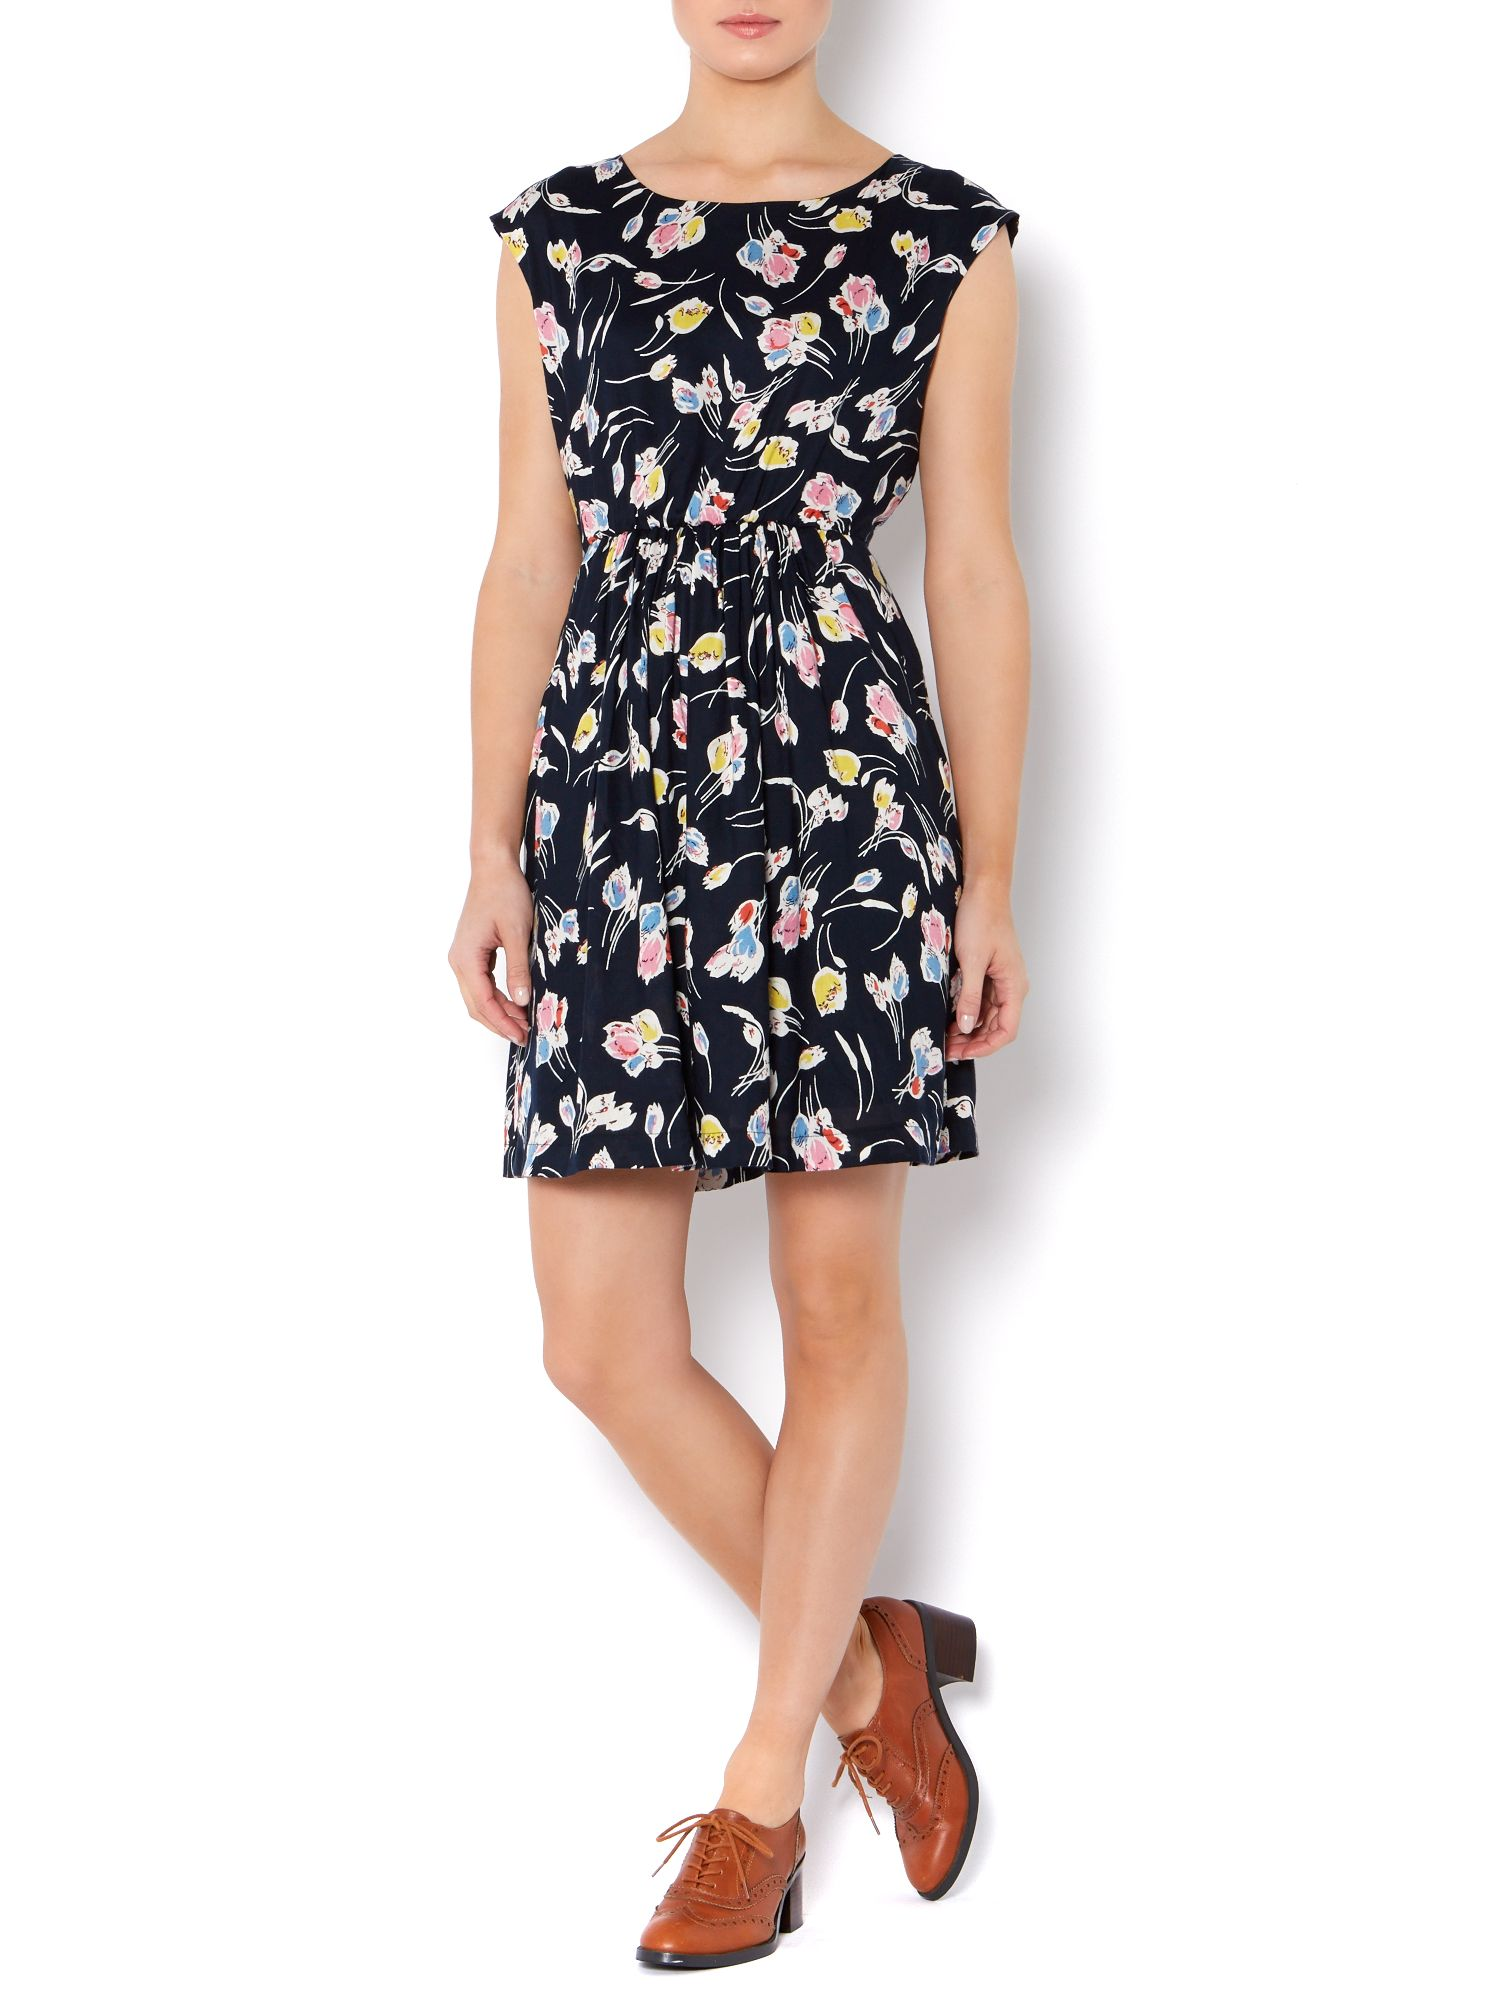 Floral print multi-coloured dress